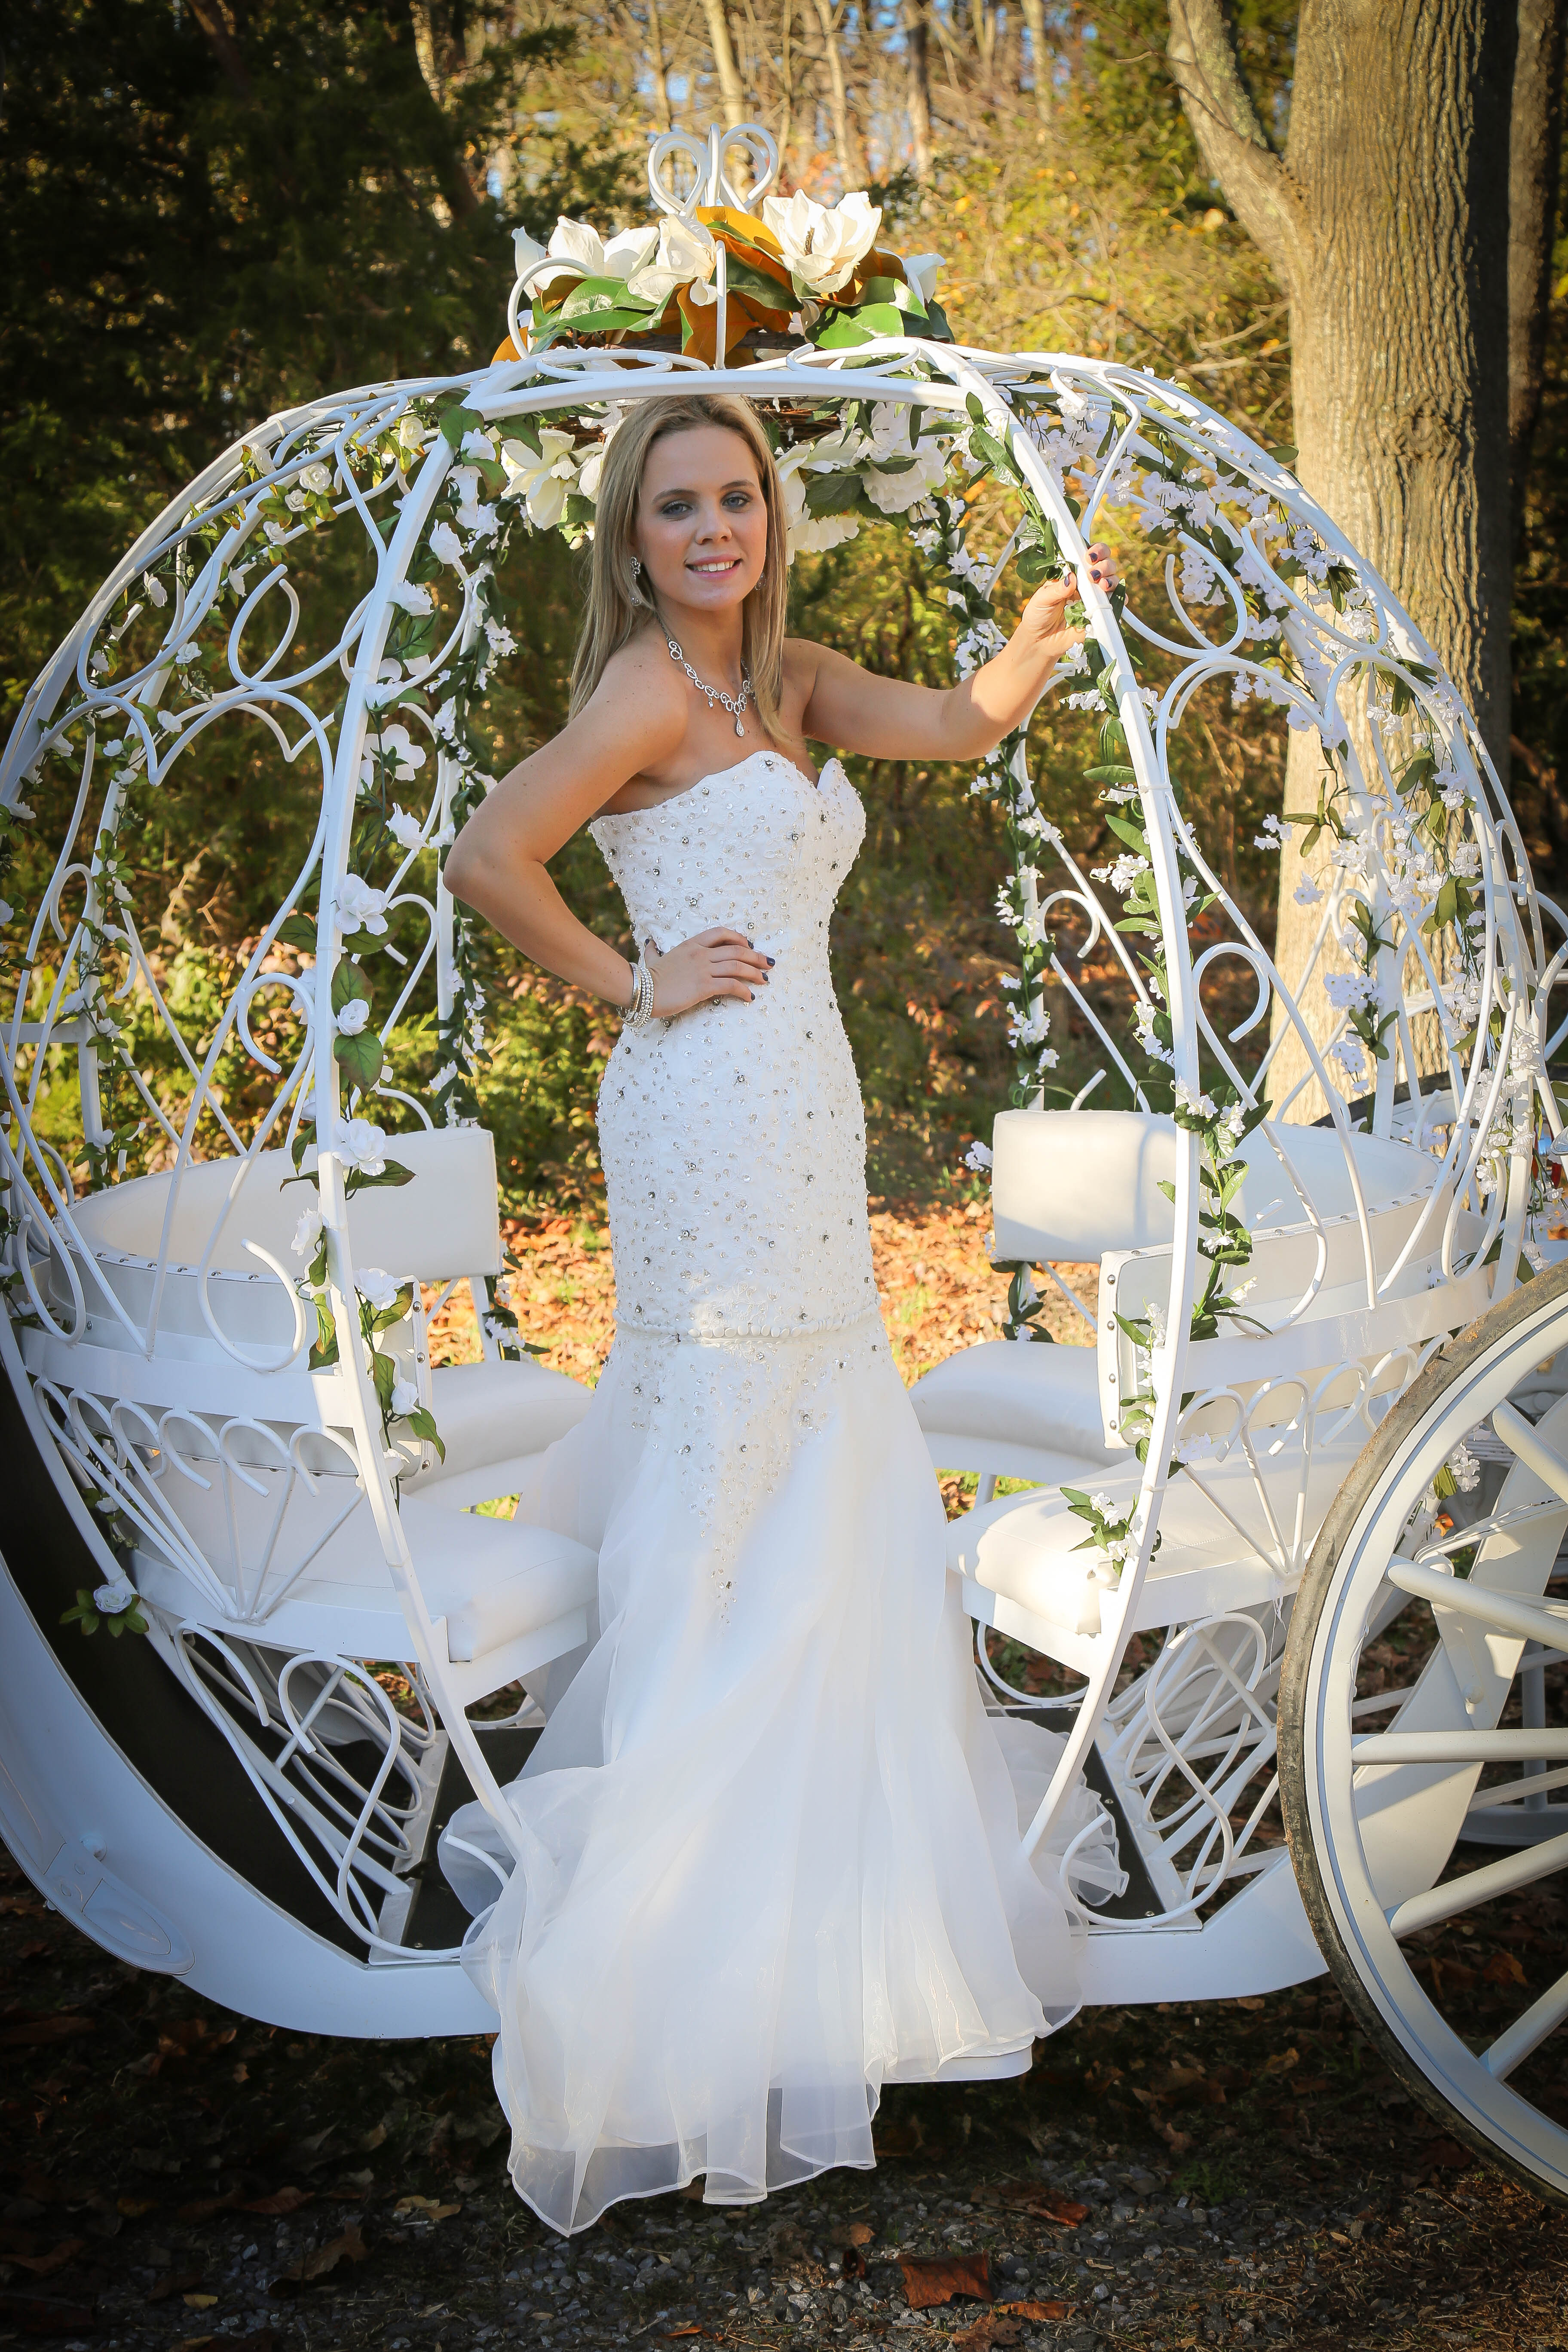 Dream Horse Carriage Company - Cinderella Carriages - NJ Weddings